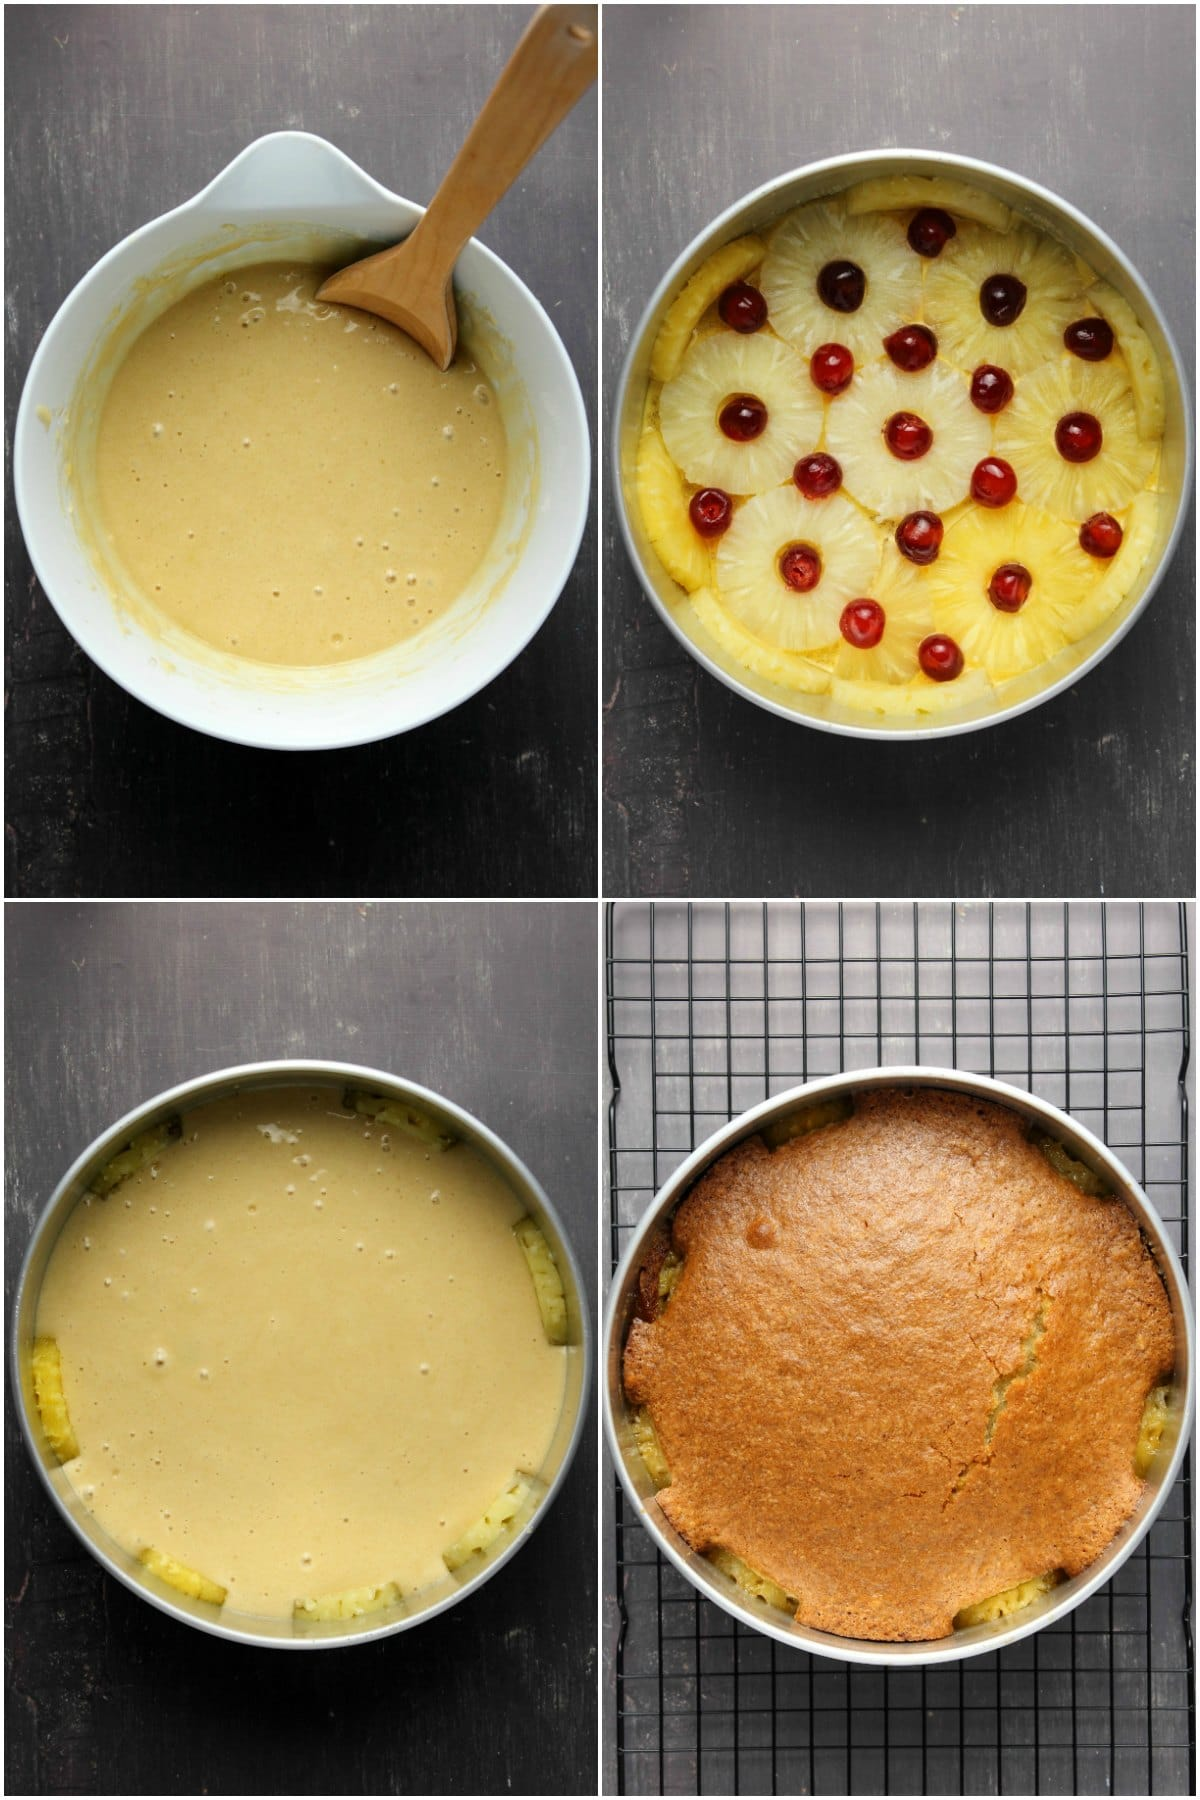 Step by step process photo collage of making a vegan pineapple upside down cake.